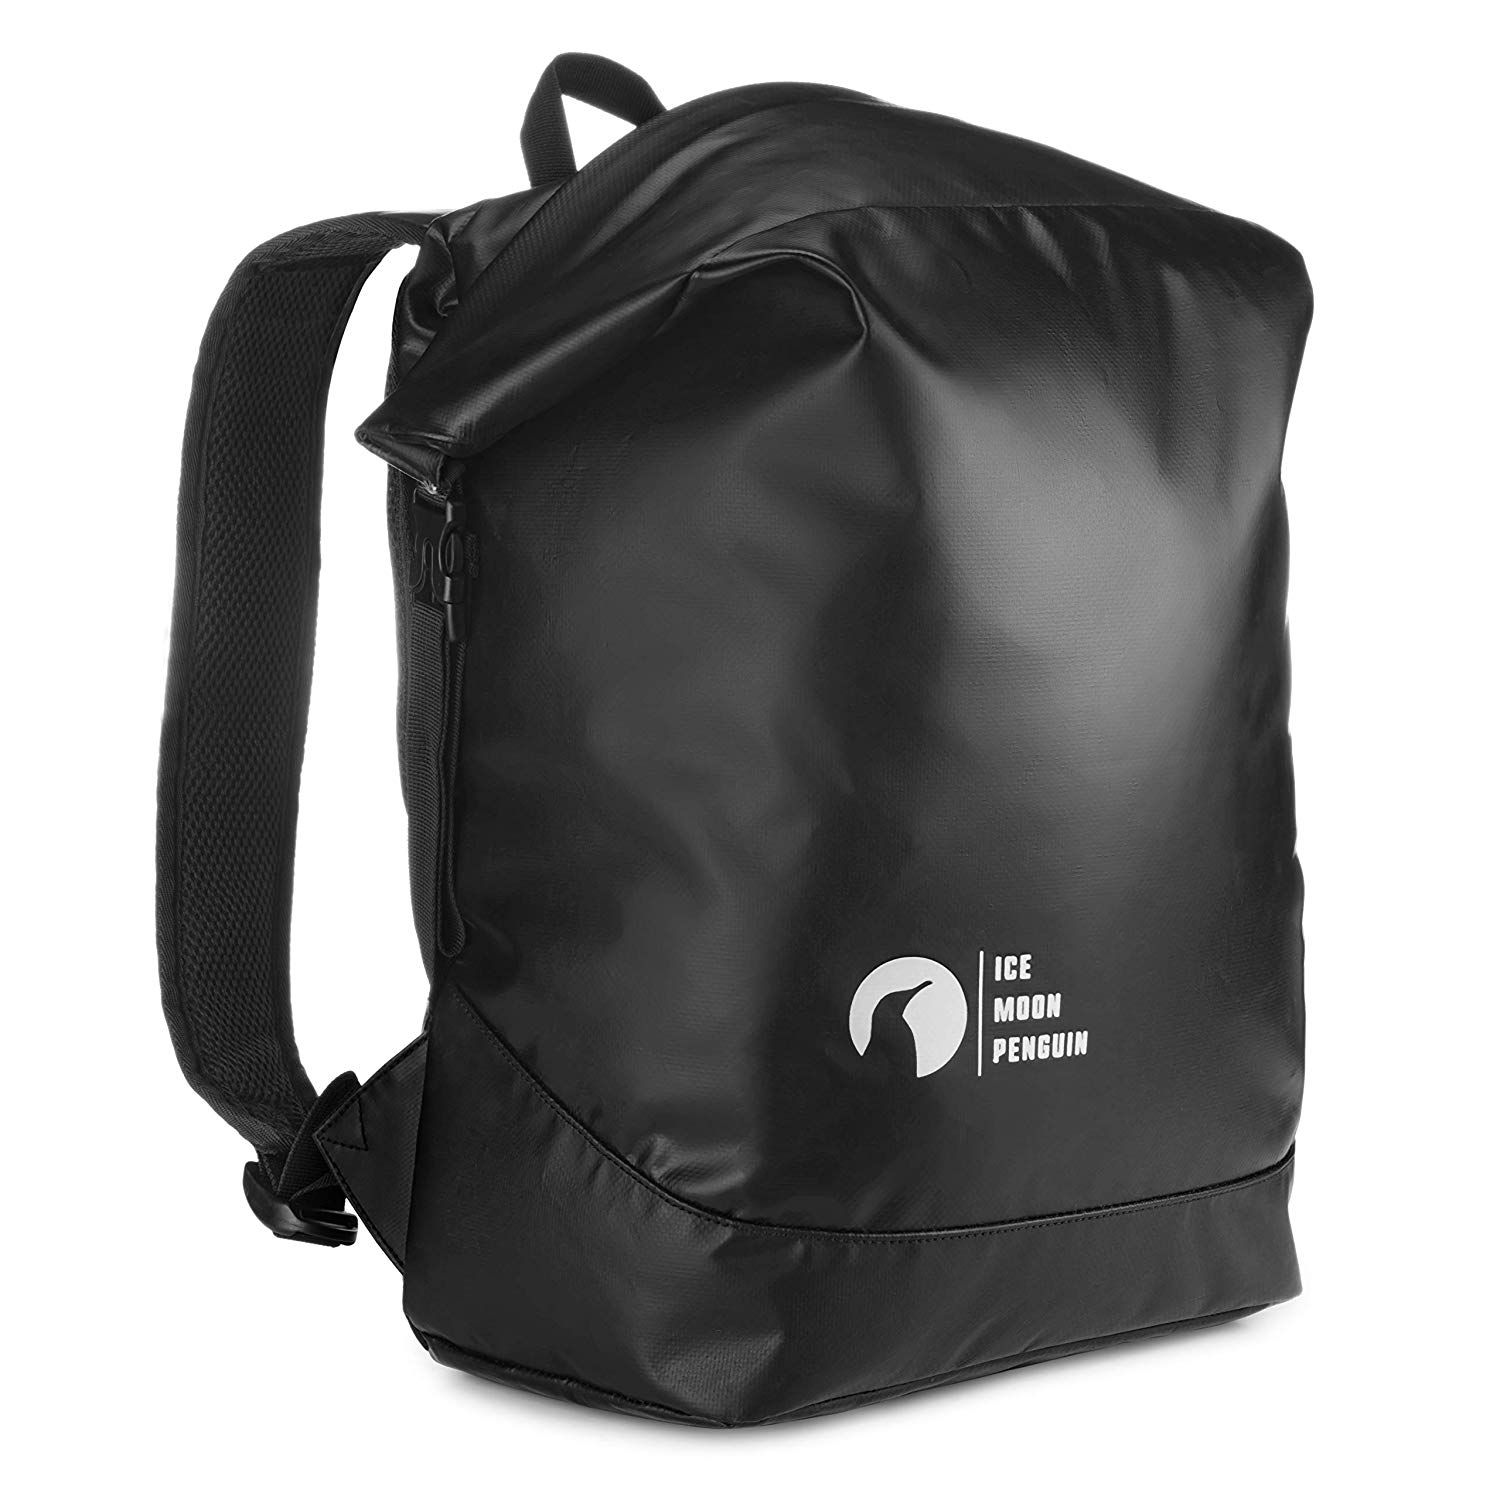 98091a612 Get Quotations · Waterproof Dry Backpack for Men - Travel Backpacks - Water  Resistant 500 PVS Material Black Color